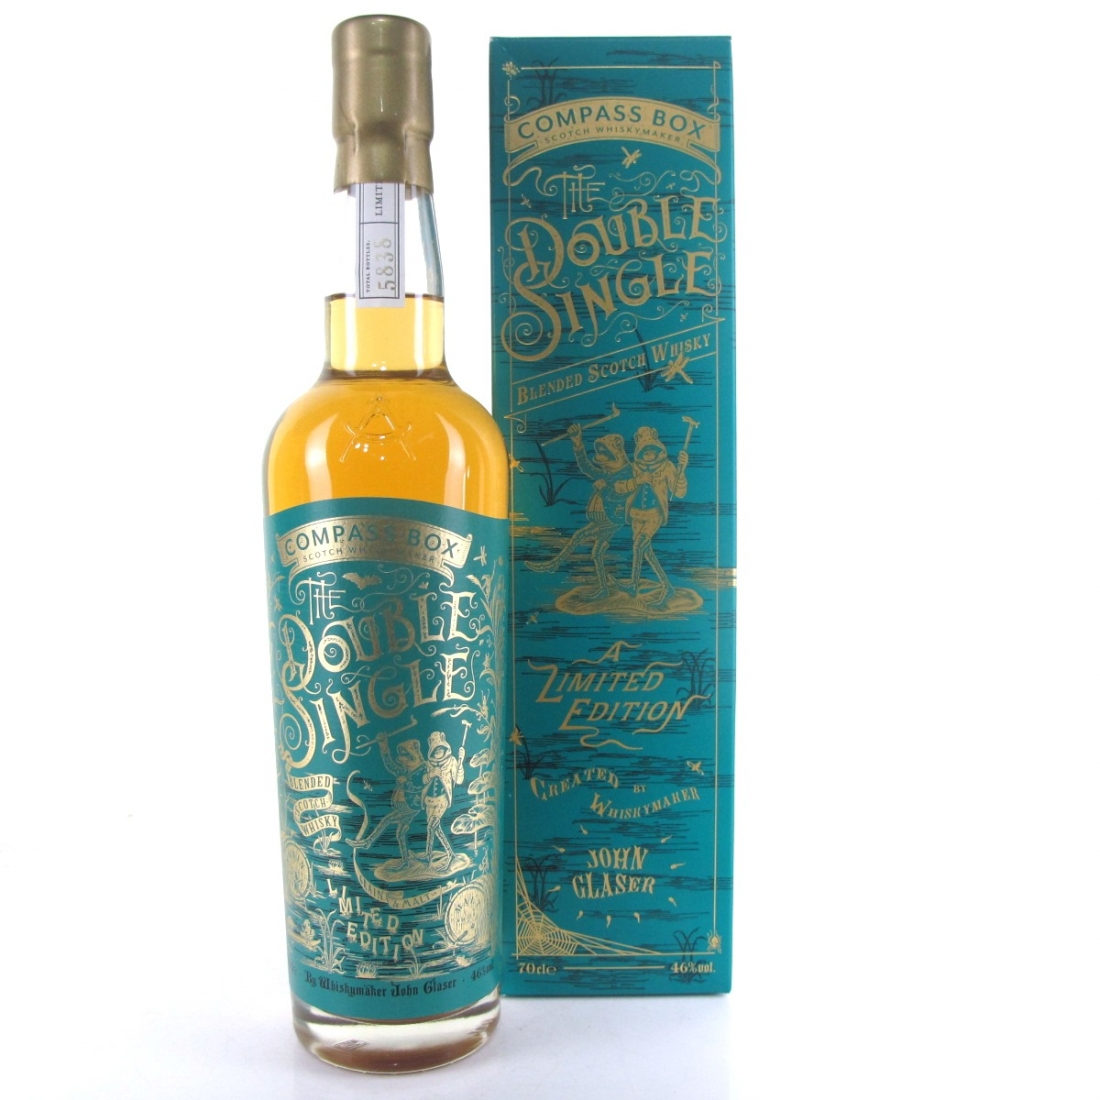 Compass Box Double Single 2017 Release